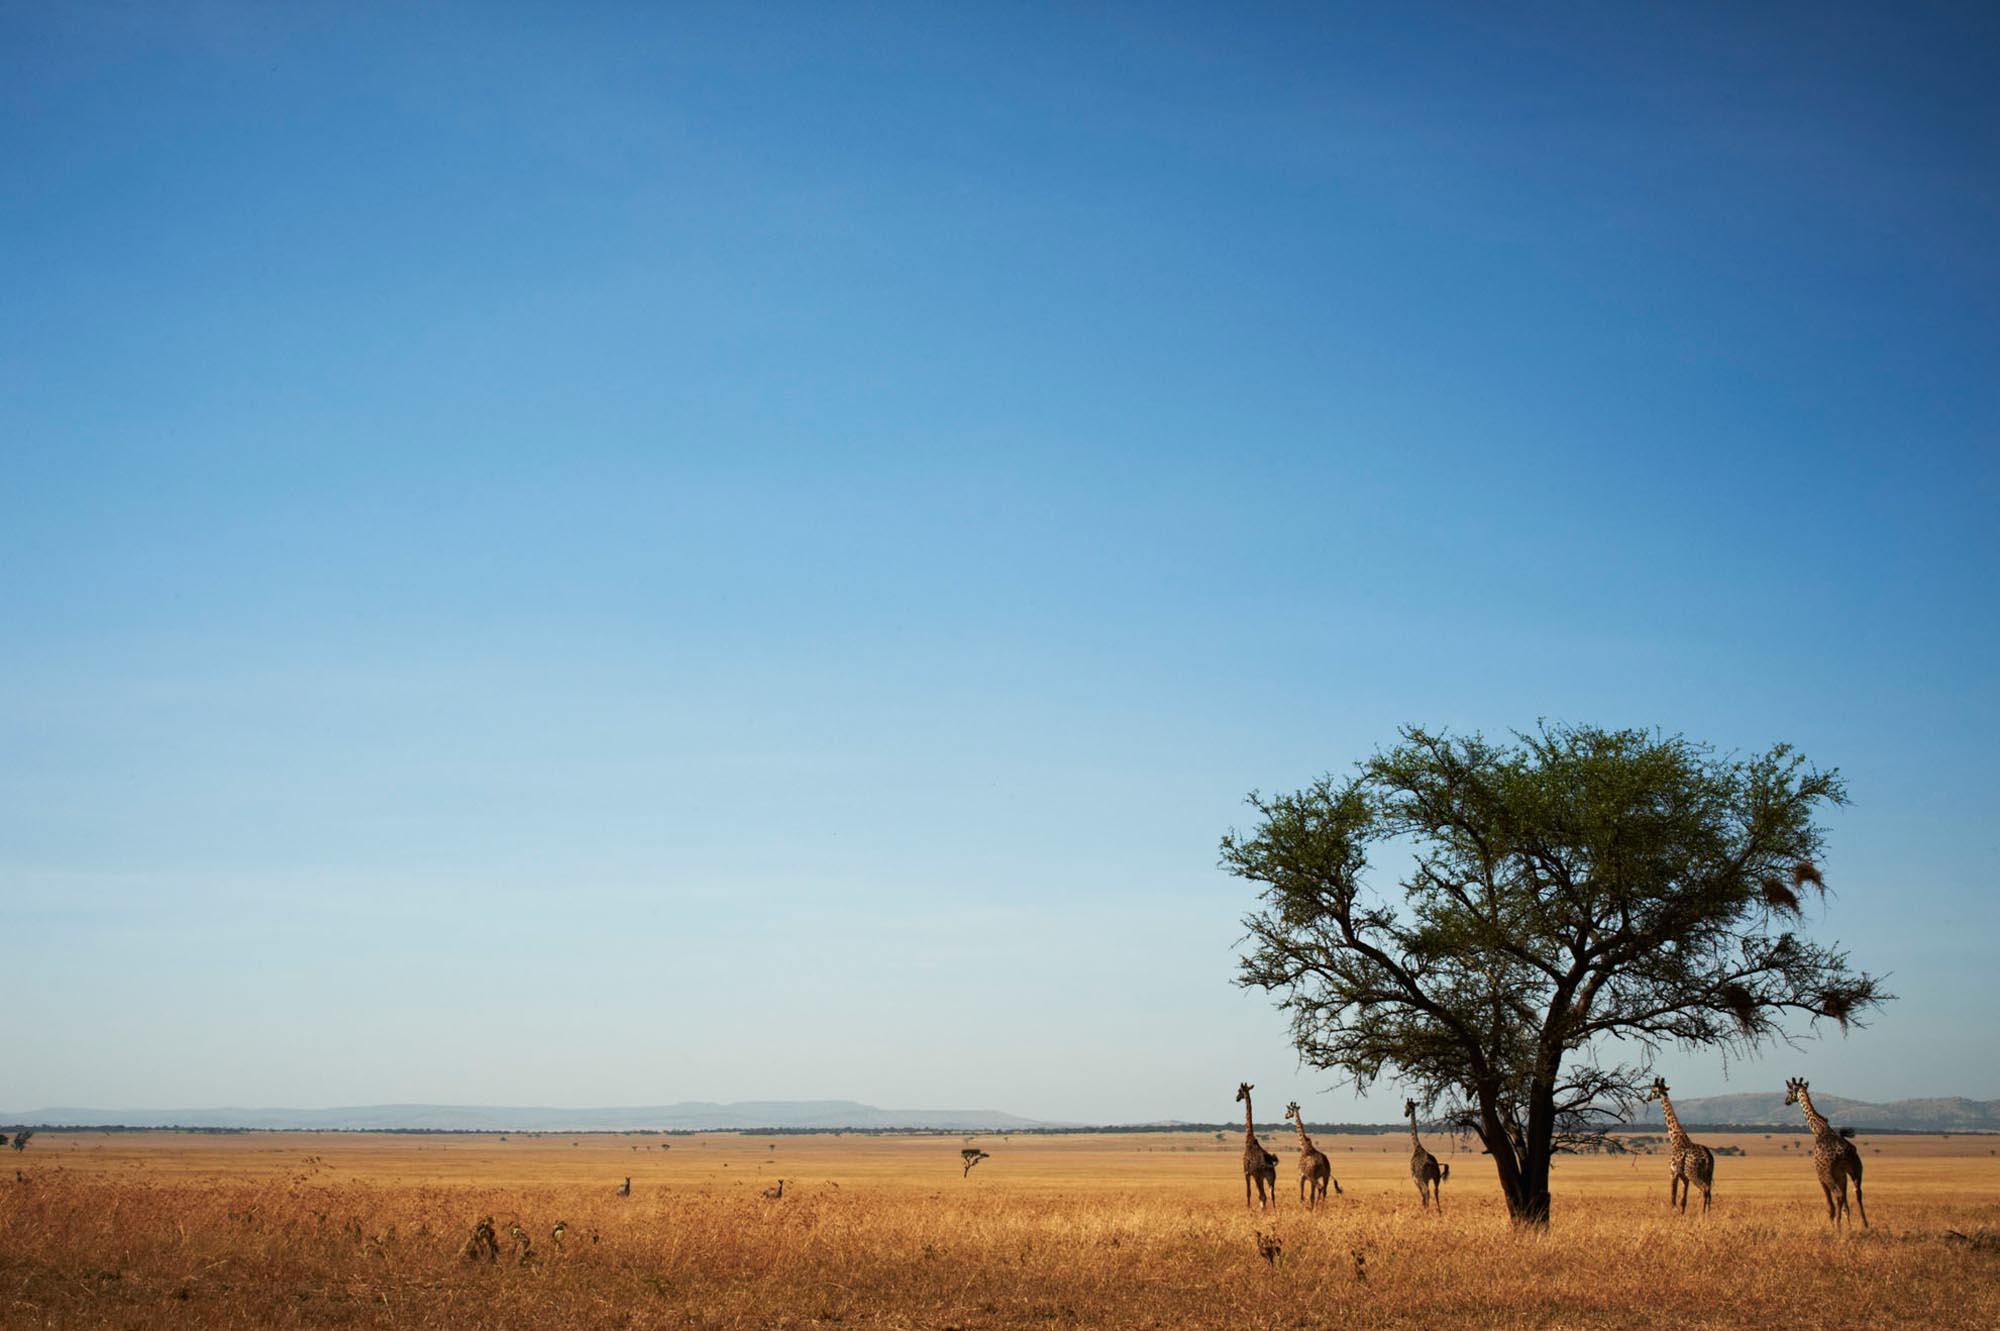 Tanzania - The True Heart of Africa - Timeless Africa Safaris